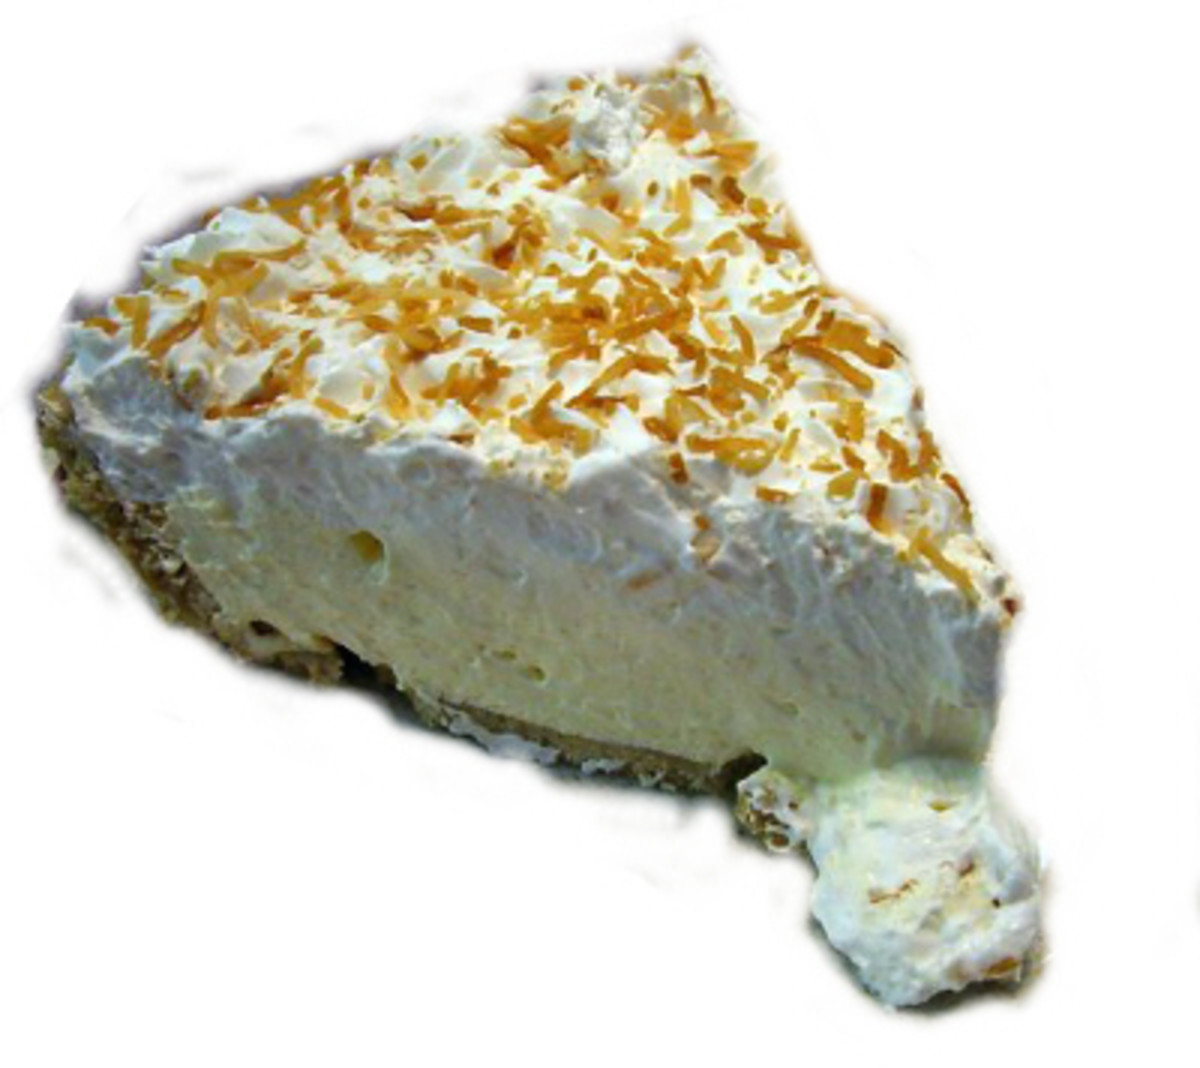 Coconut cream pie http://commons.wikimedia.org/wiki/File:Coconut_cream_pie.jpg under Creative Commons Attribution ShareAlike 2.5 License used under same license